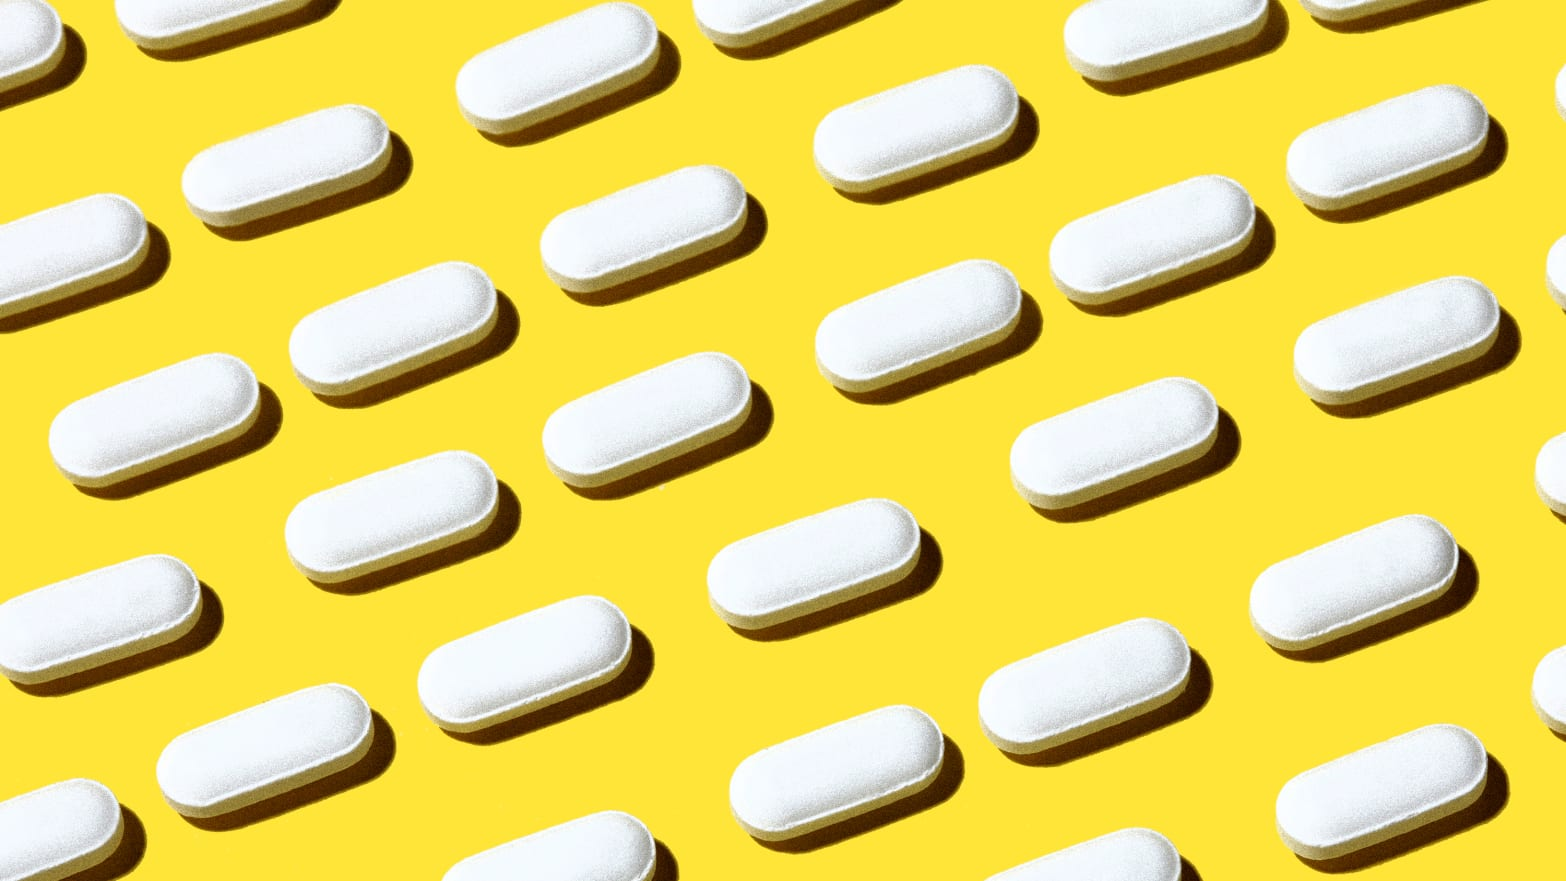 Study Shows Some Generics Can Cost Medicare Recipients More Than Brand-Name Drugs